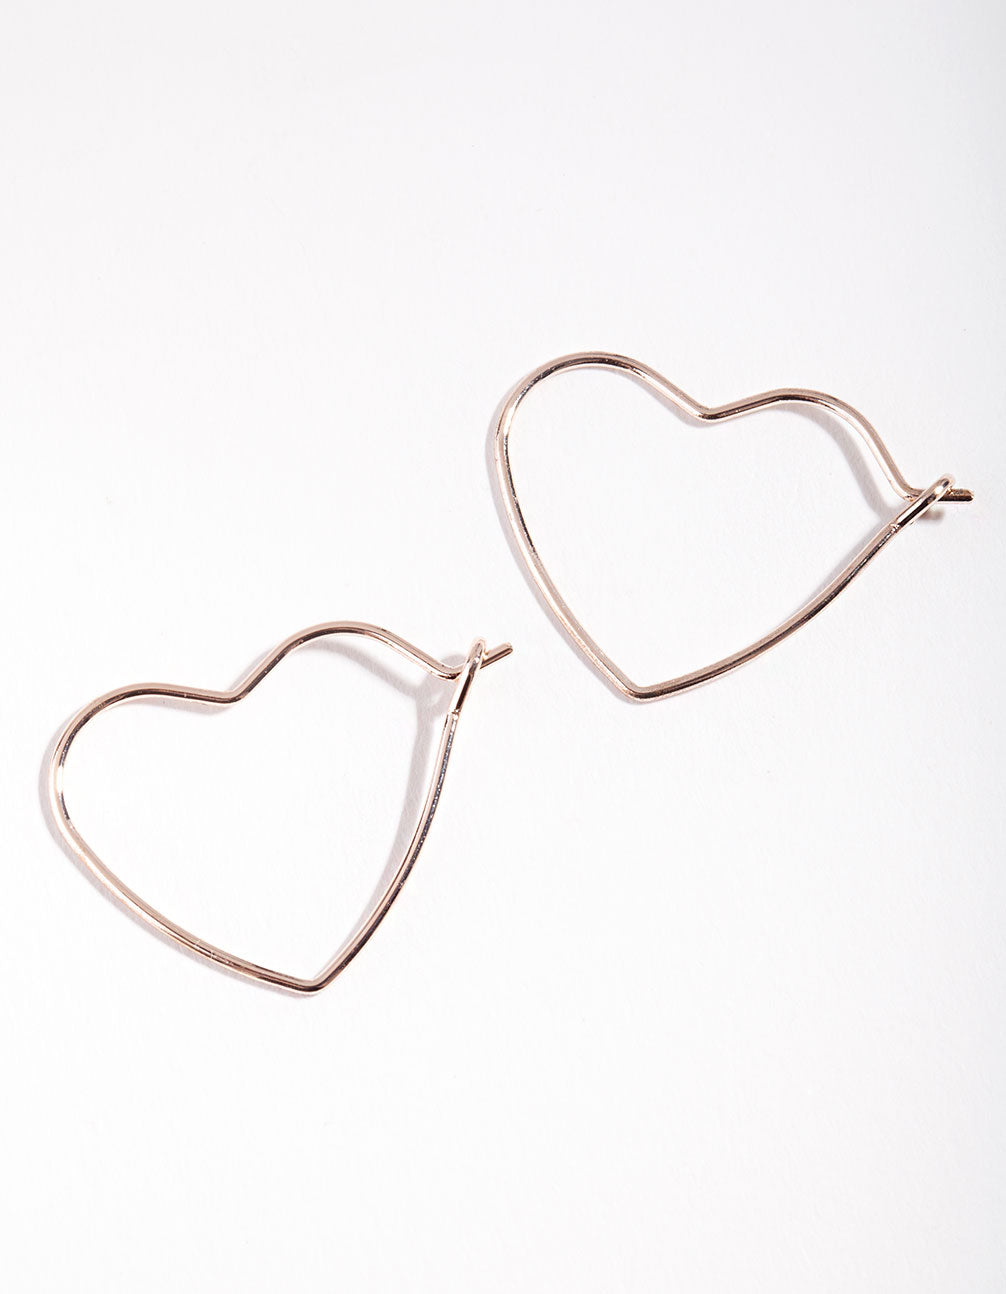 Rose Gold Heart Hoop Earrings